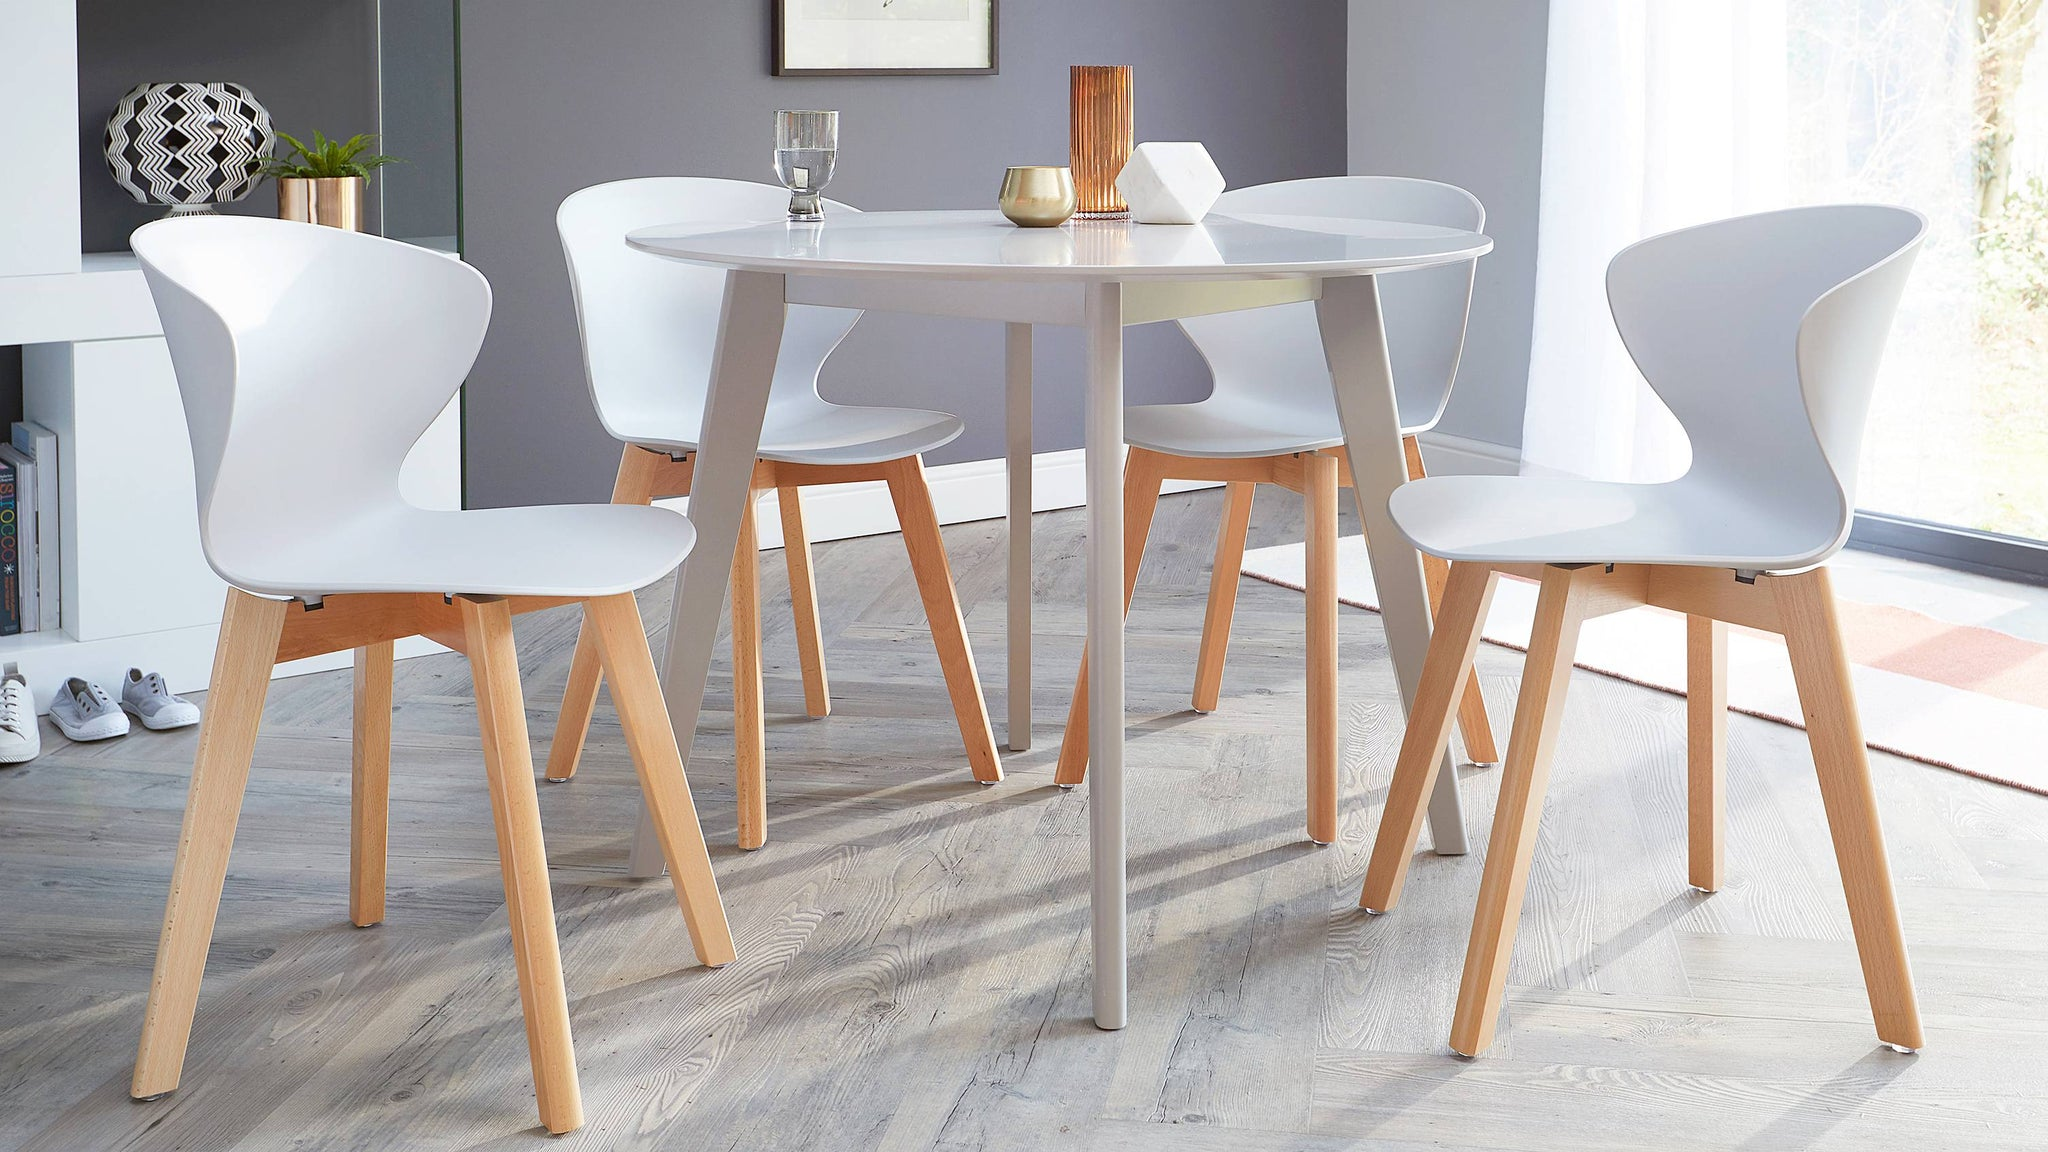 Buy modern wooden chairs online